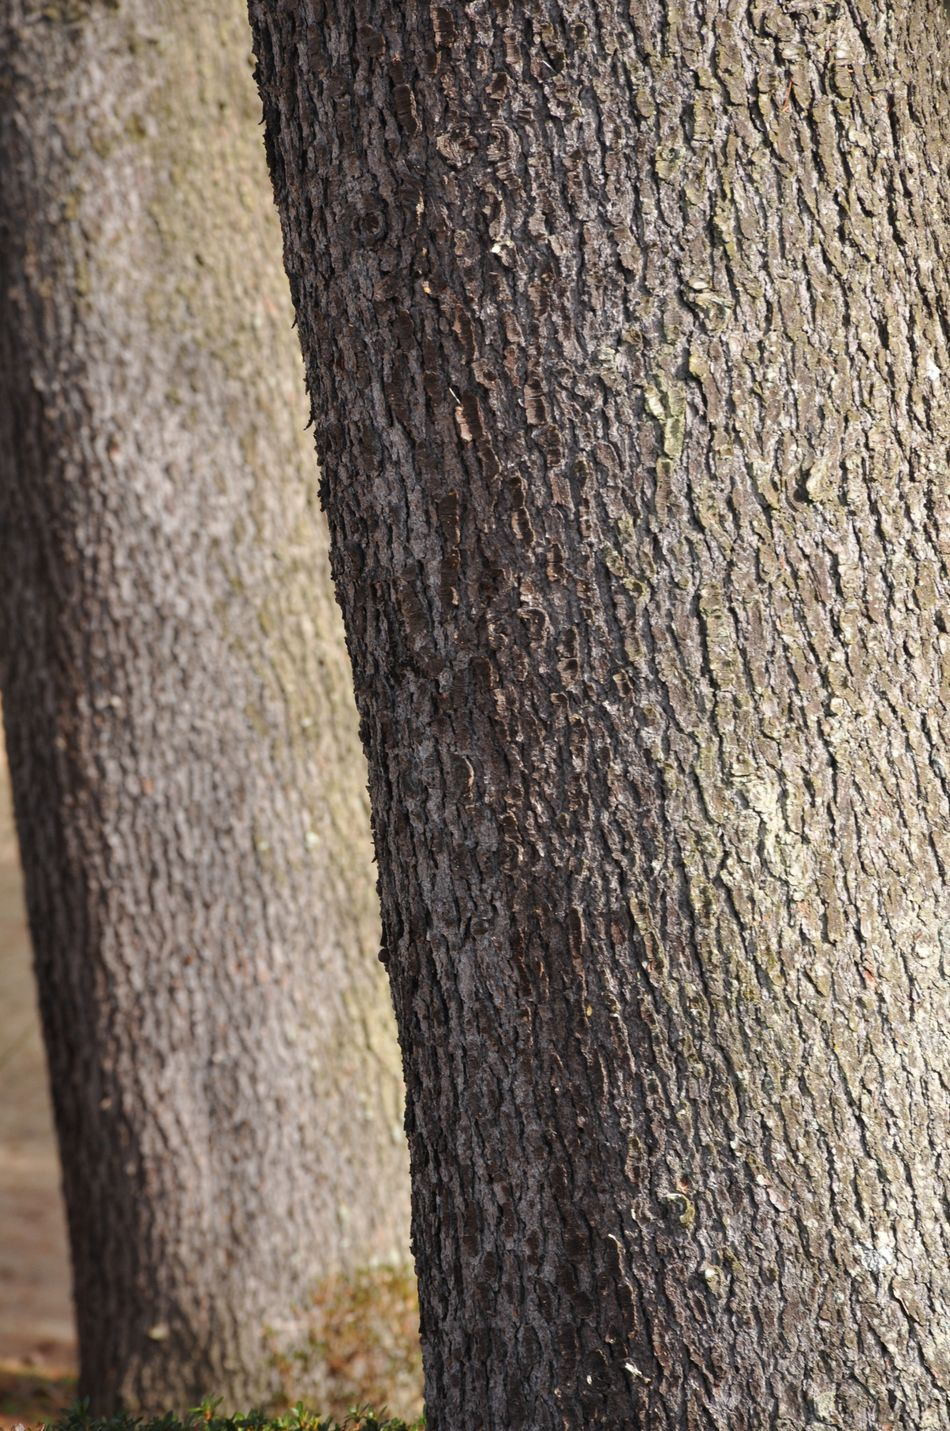 Tree Tree Trunk Textured  Full Frame Nature Close-up Plant Bark Backgrounds Growth No People Rough Bark Day Outdoors